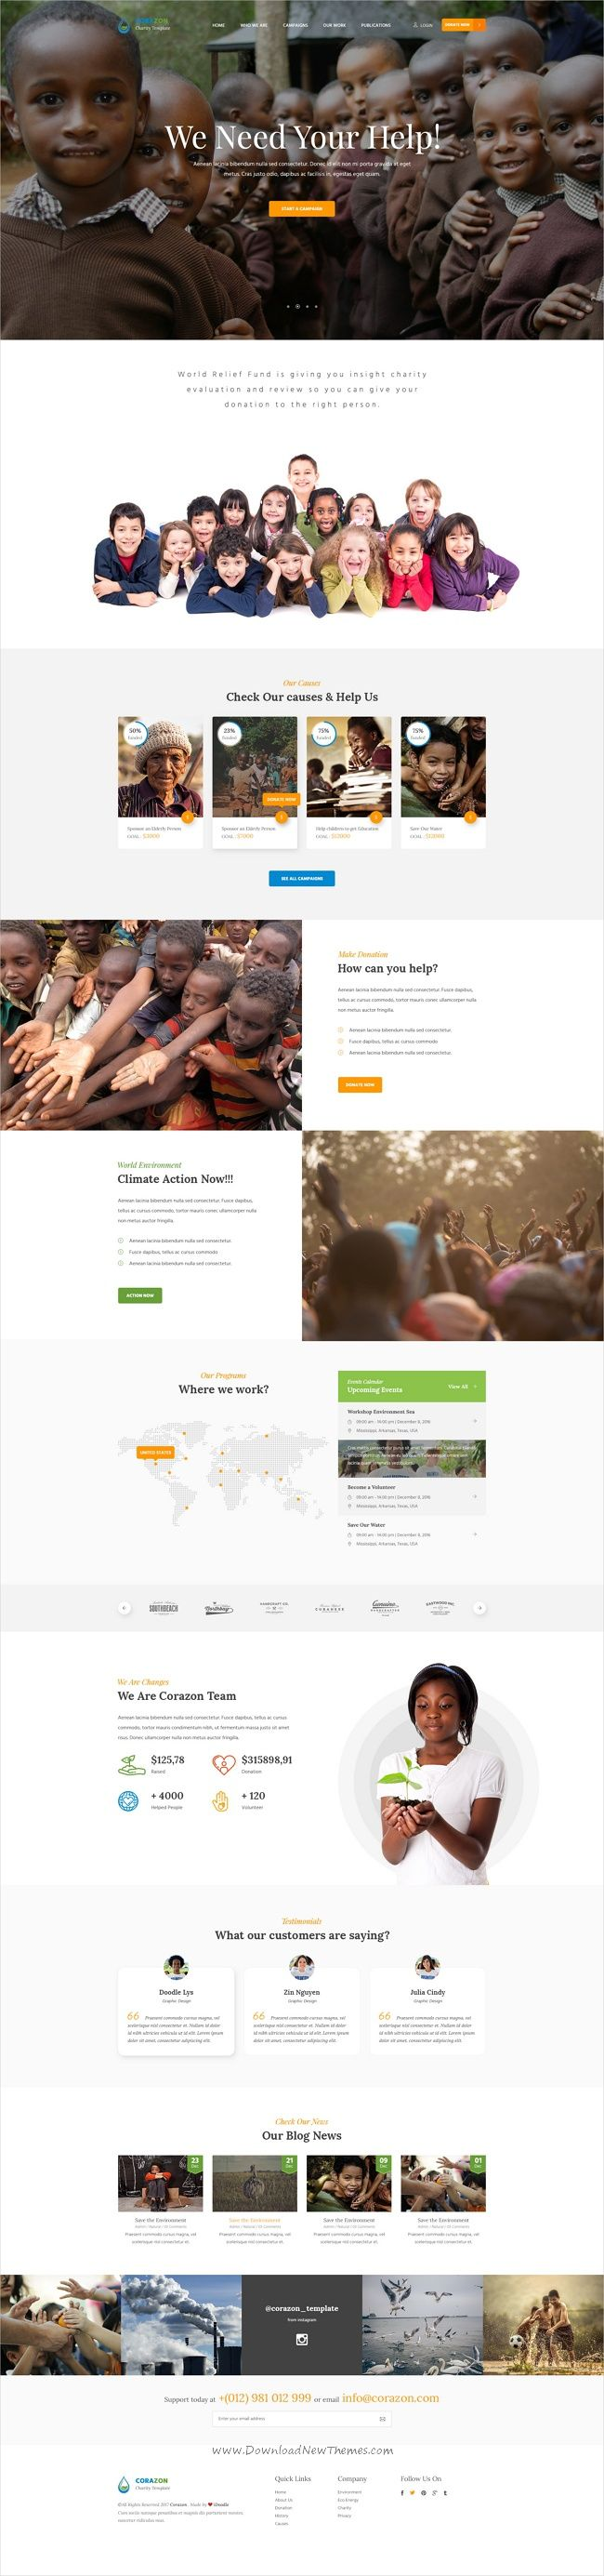 Corazon is a wonderful #Photoshop template for environment, #charity, non-profit organization, #donation, church or fundraising website with 18+ layered PSD files download now➩ https://themeforest.net/item/corazon-multi-concept-environment-charity-green-energy-nonprofit-psd-template/19535858?ref=Datasata